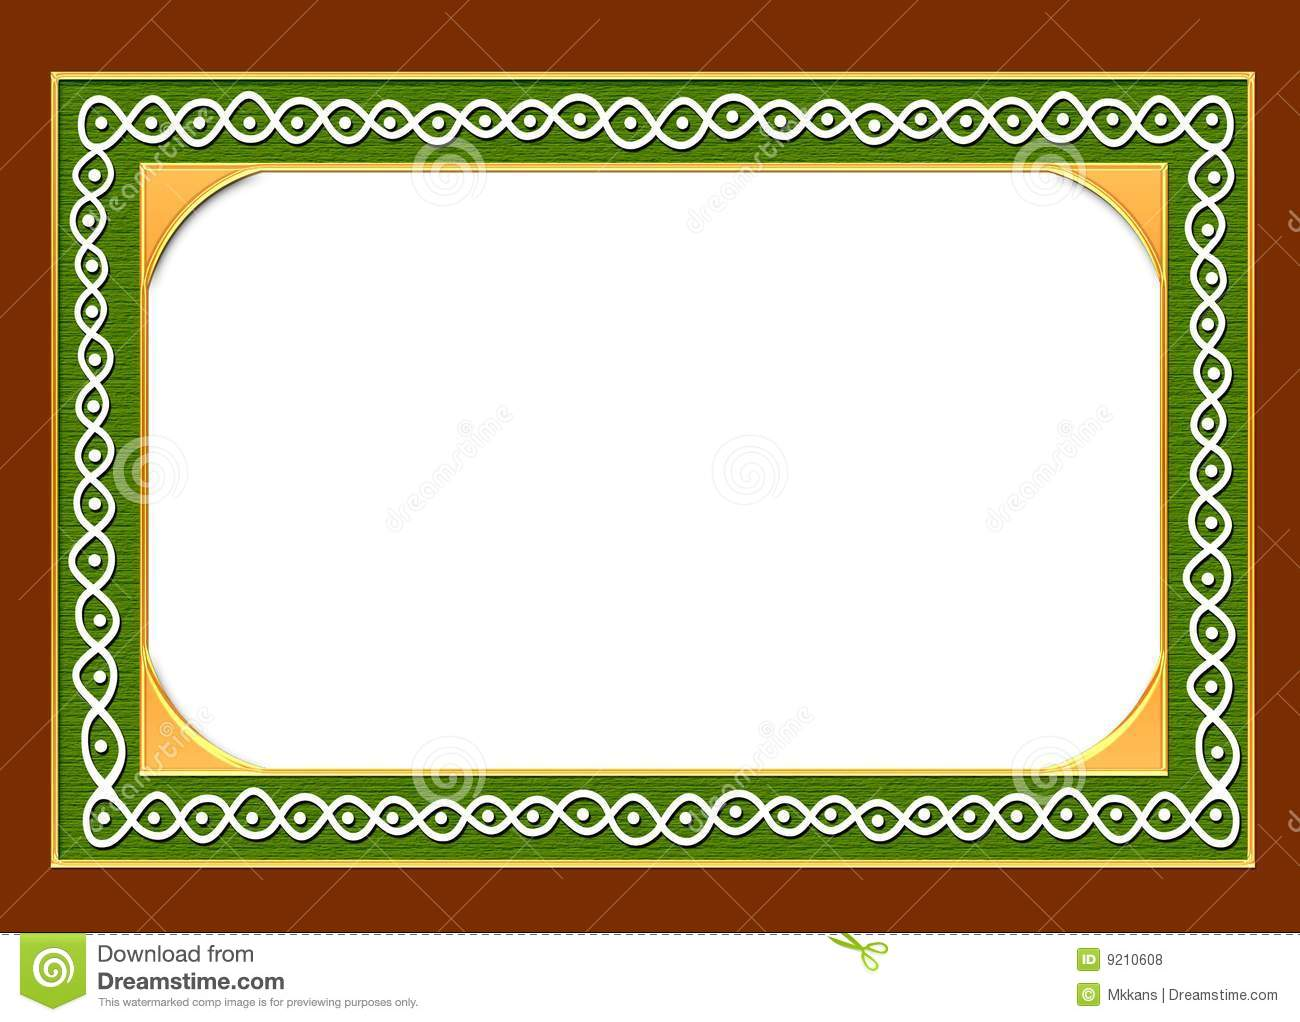 Indian Wedding Invitation Content for perfect invitations example